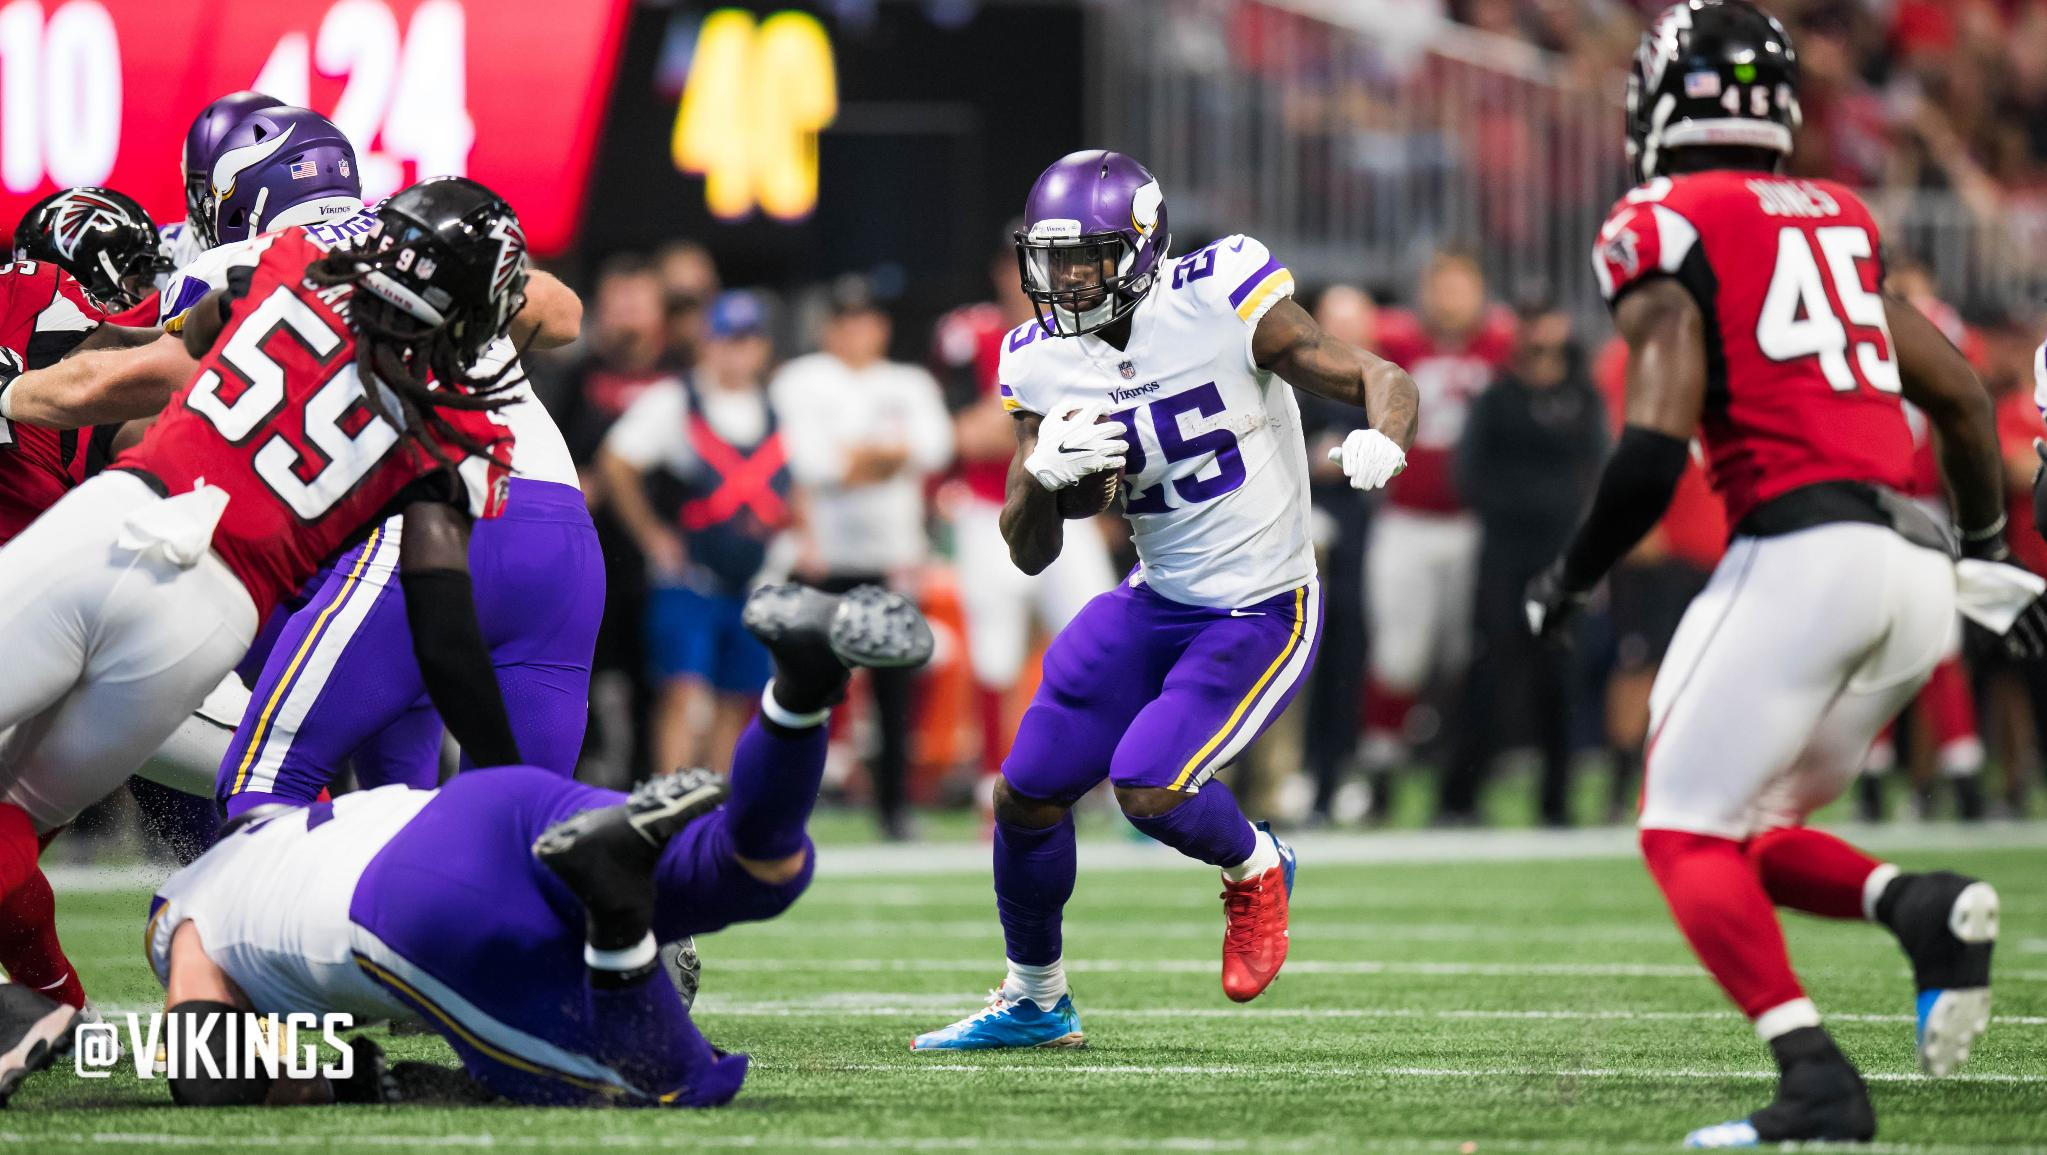 Lunchbreak: Vikings Have Forged Historical Turnaround in Run Game